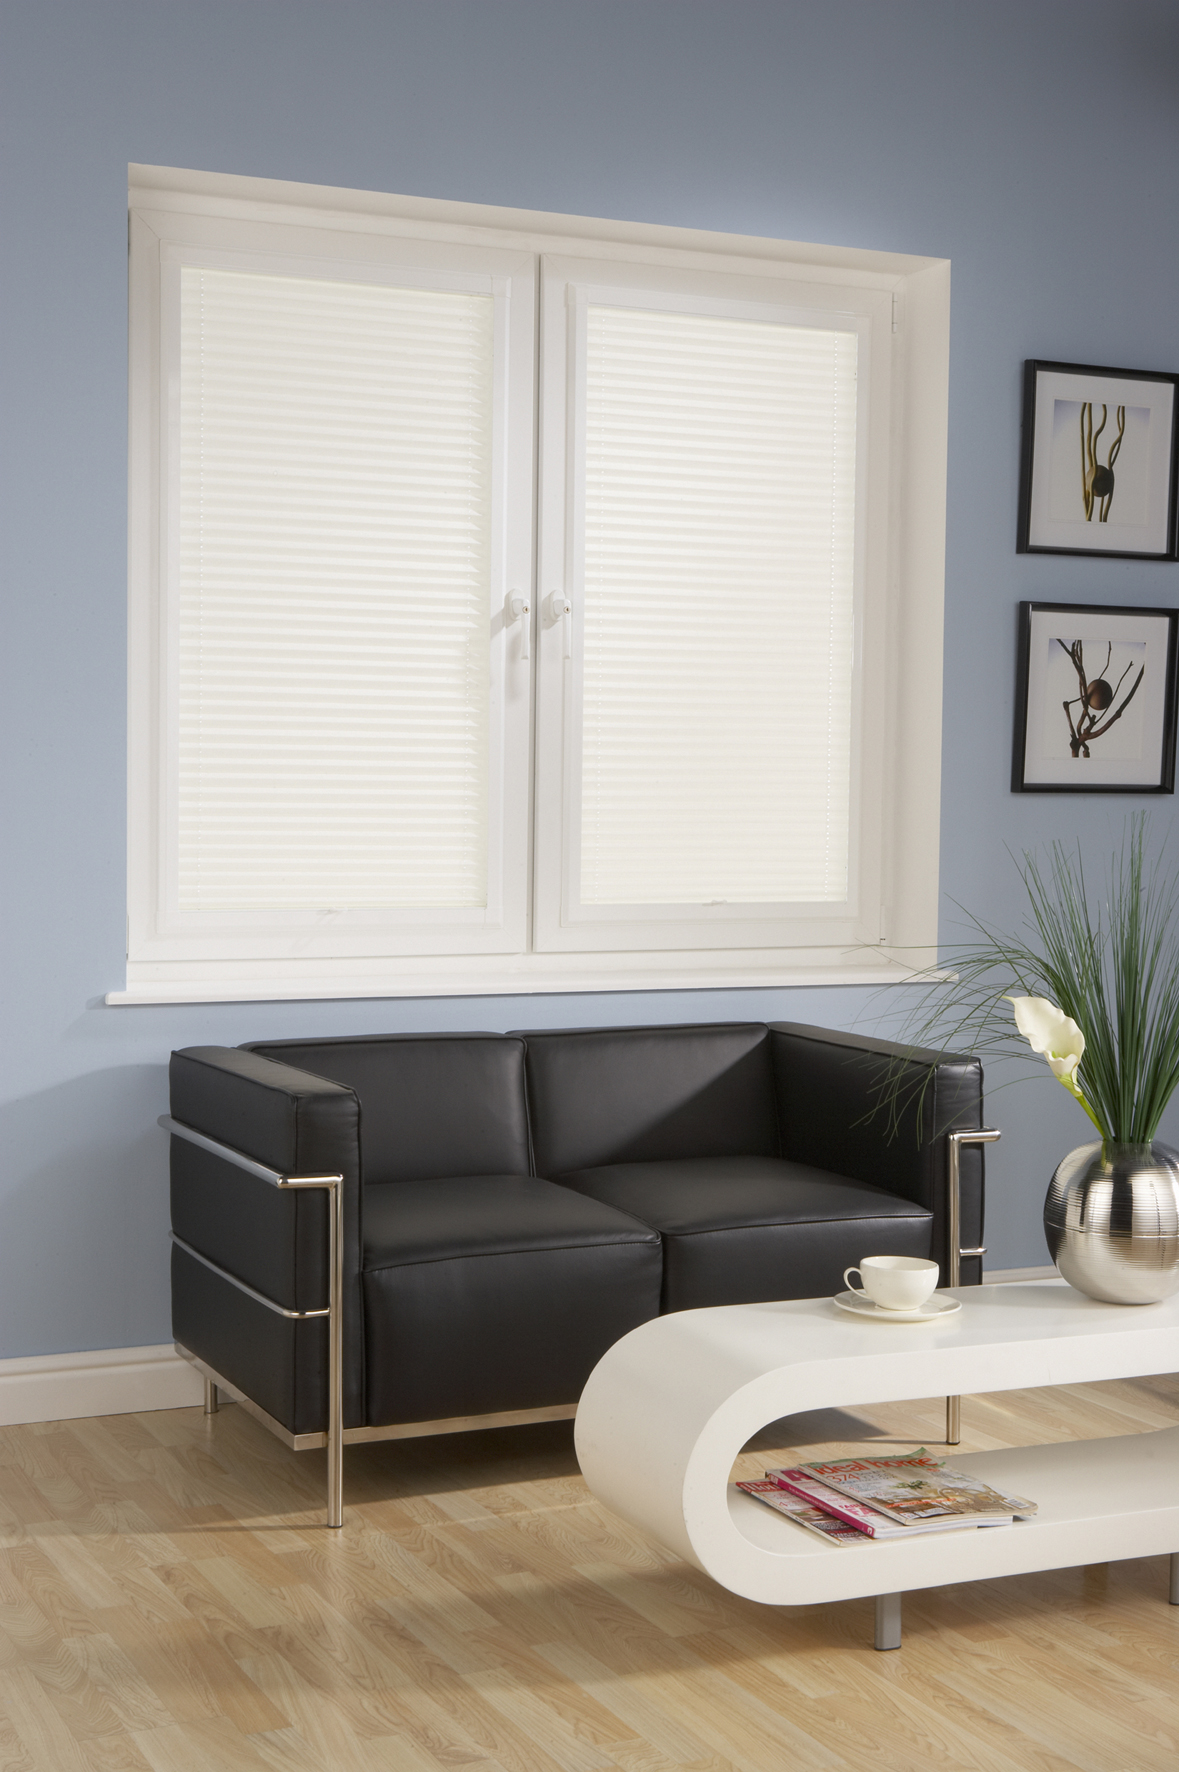 for types treatments basic louver of window drape windows bedrooms drapes